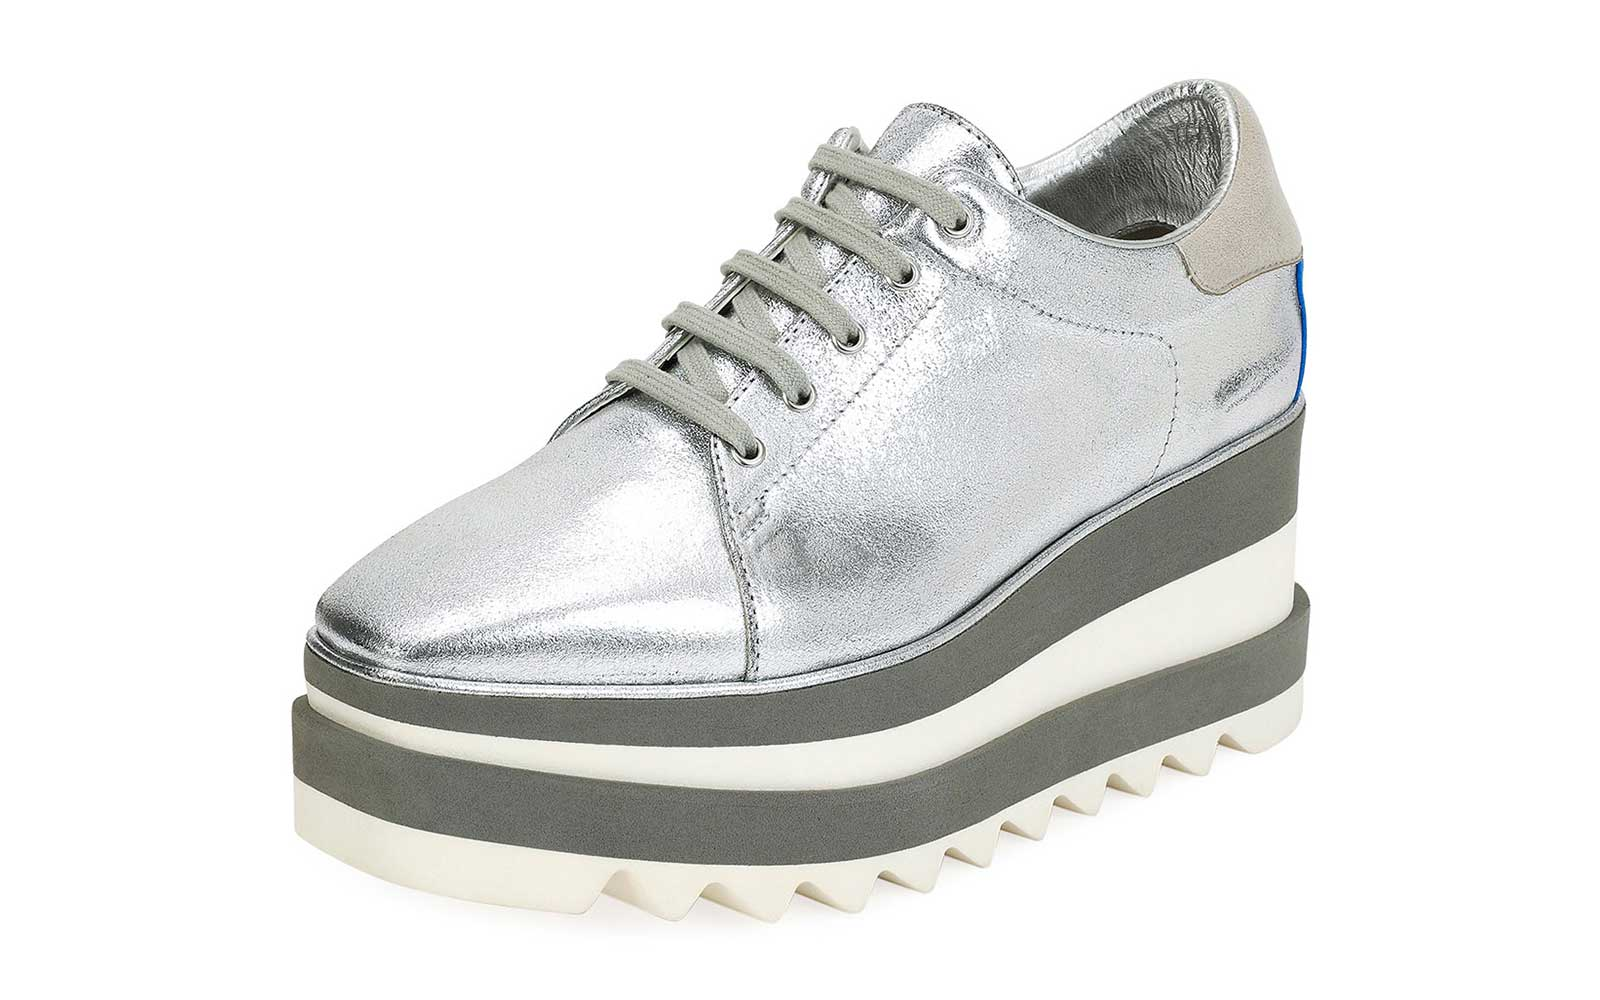 076ccca74eaf The Most Comfortable Wedges for Walking